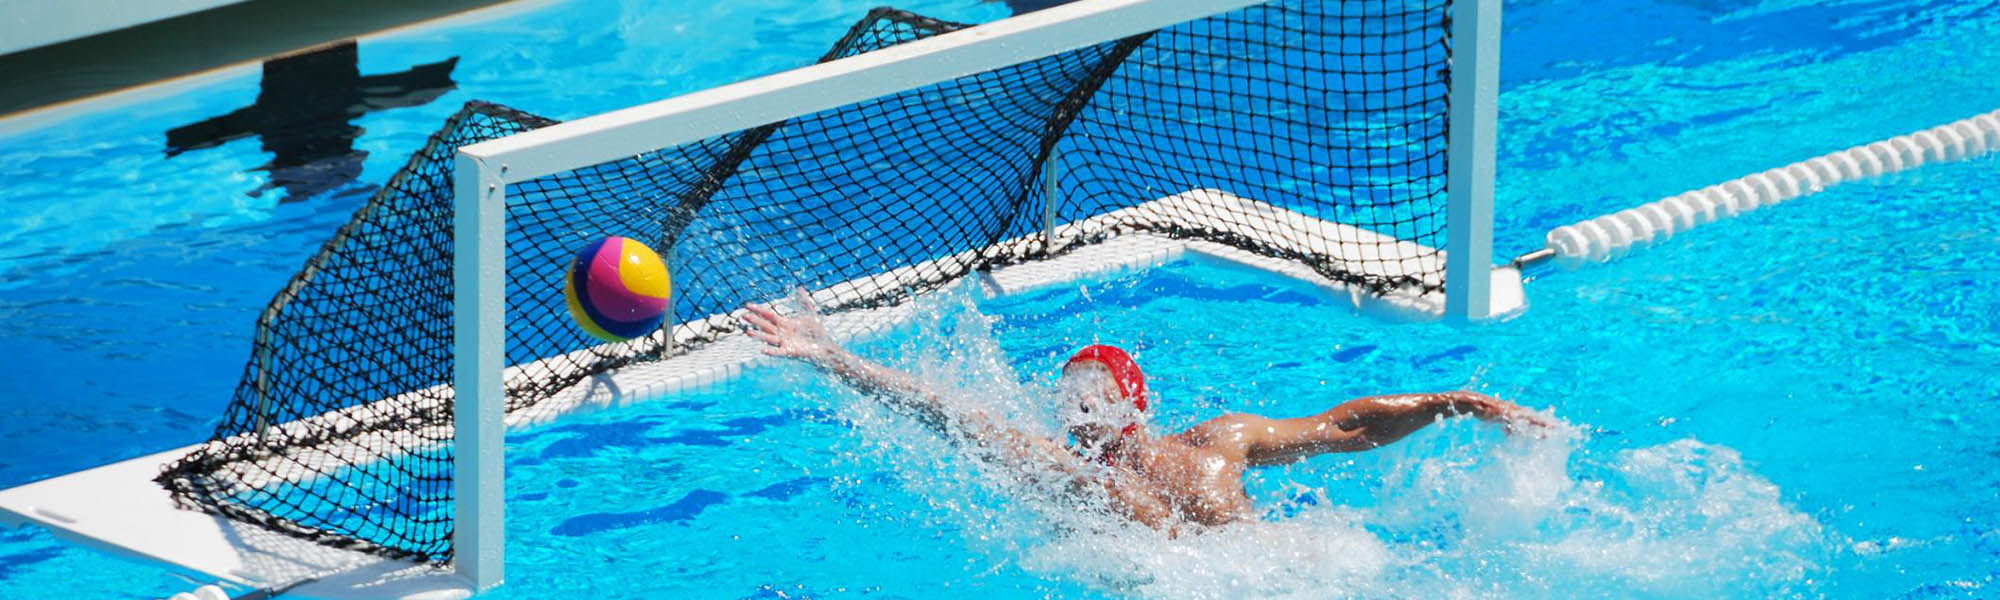 a water polo goal being scored